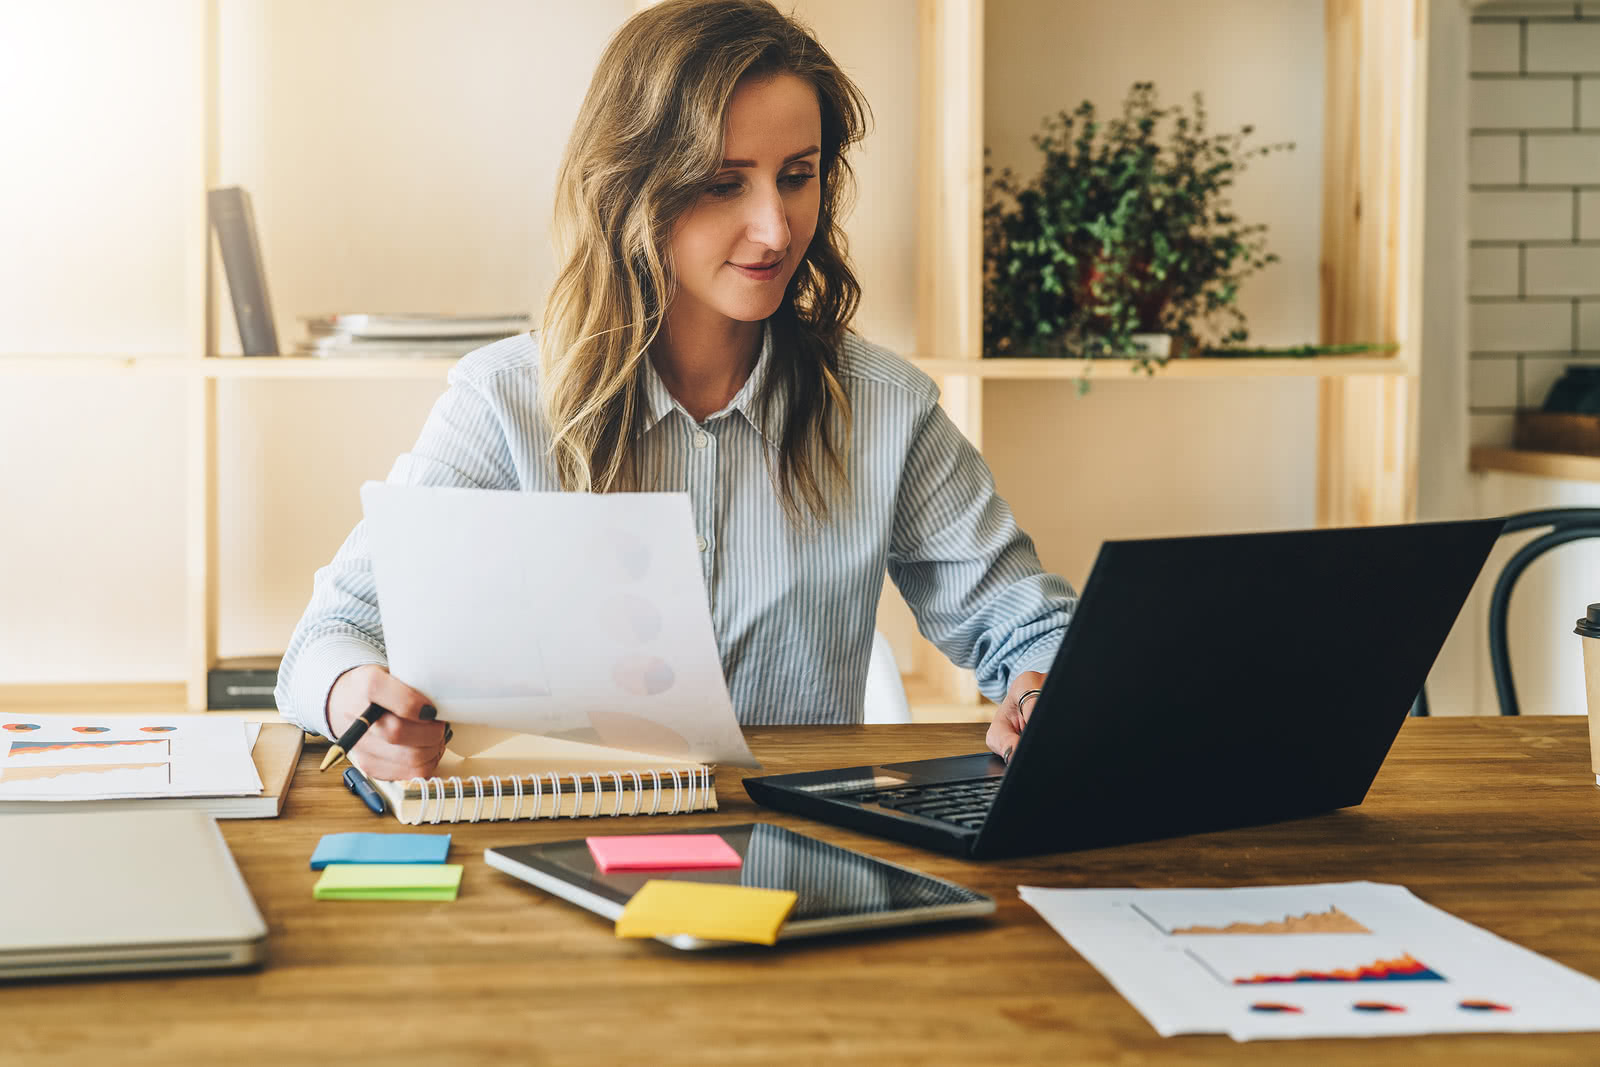 Businesswoman reviewing business metrics on laptop and on paper